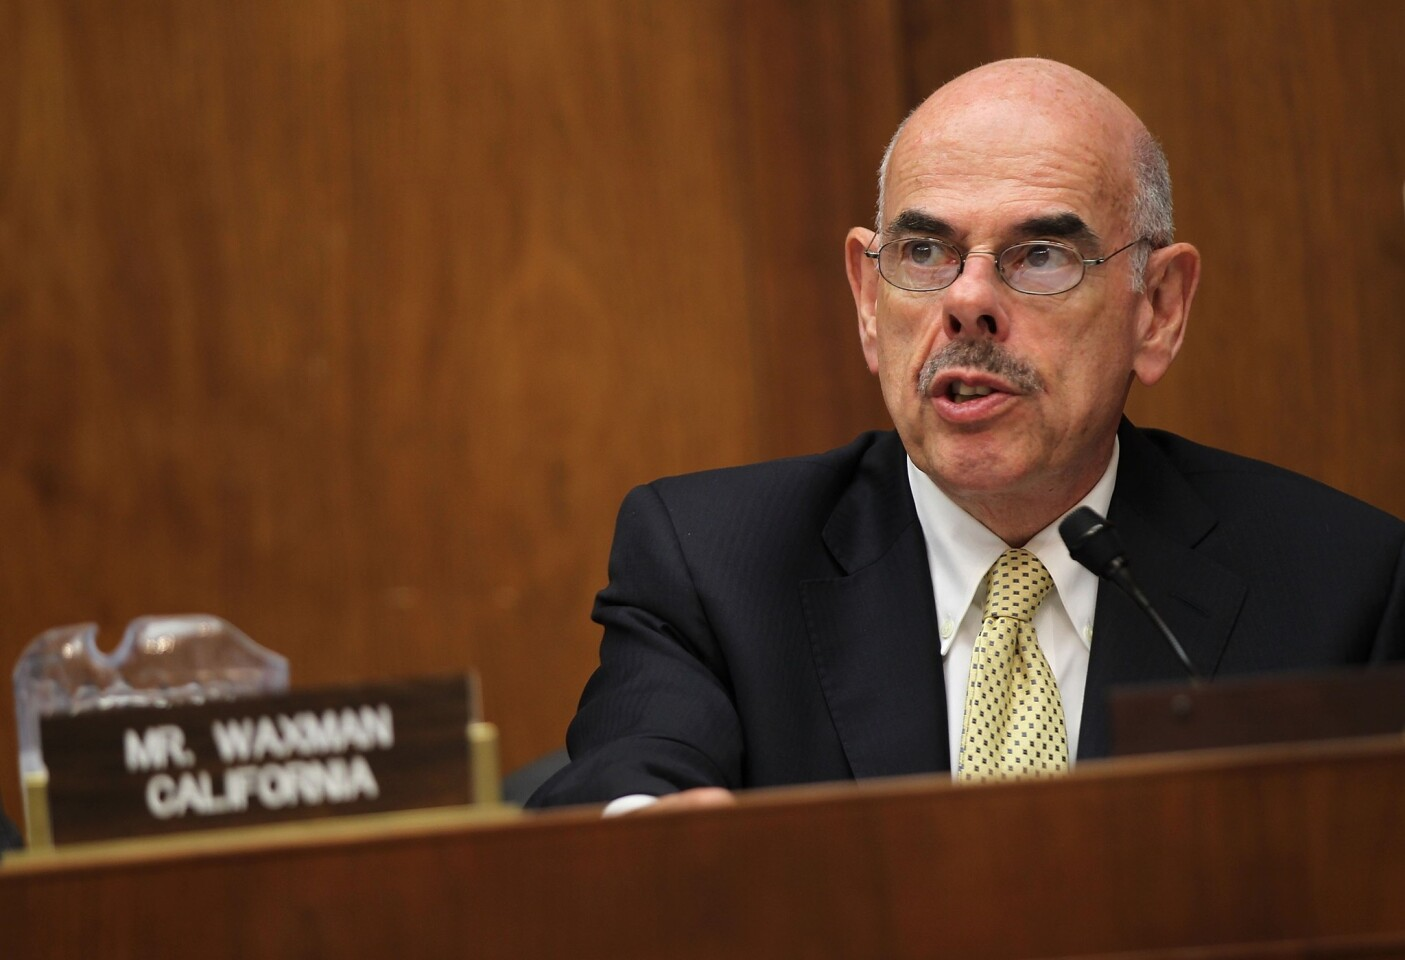 Elected in 1974, U.S. Rep. Henry Waxman (D-Beverly Hills) announced Jan. 31 that he would end his 40-year run as one of the House's most liberal members.